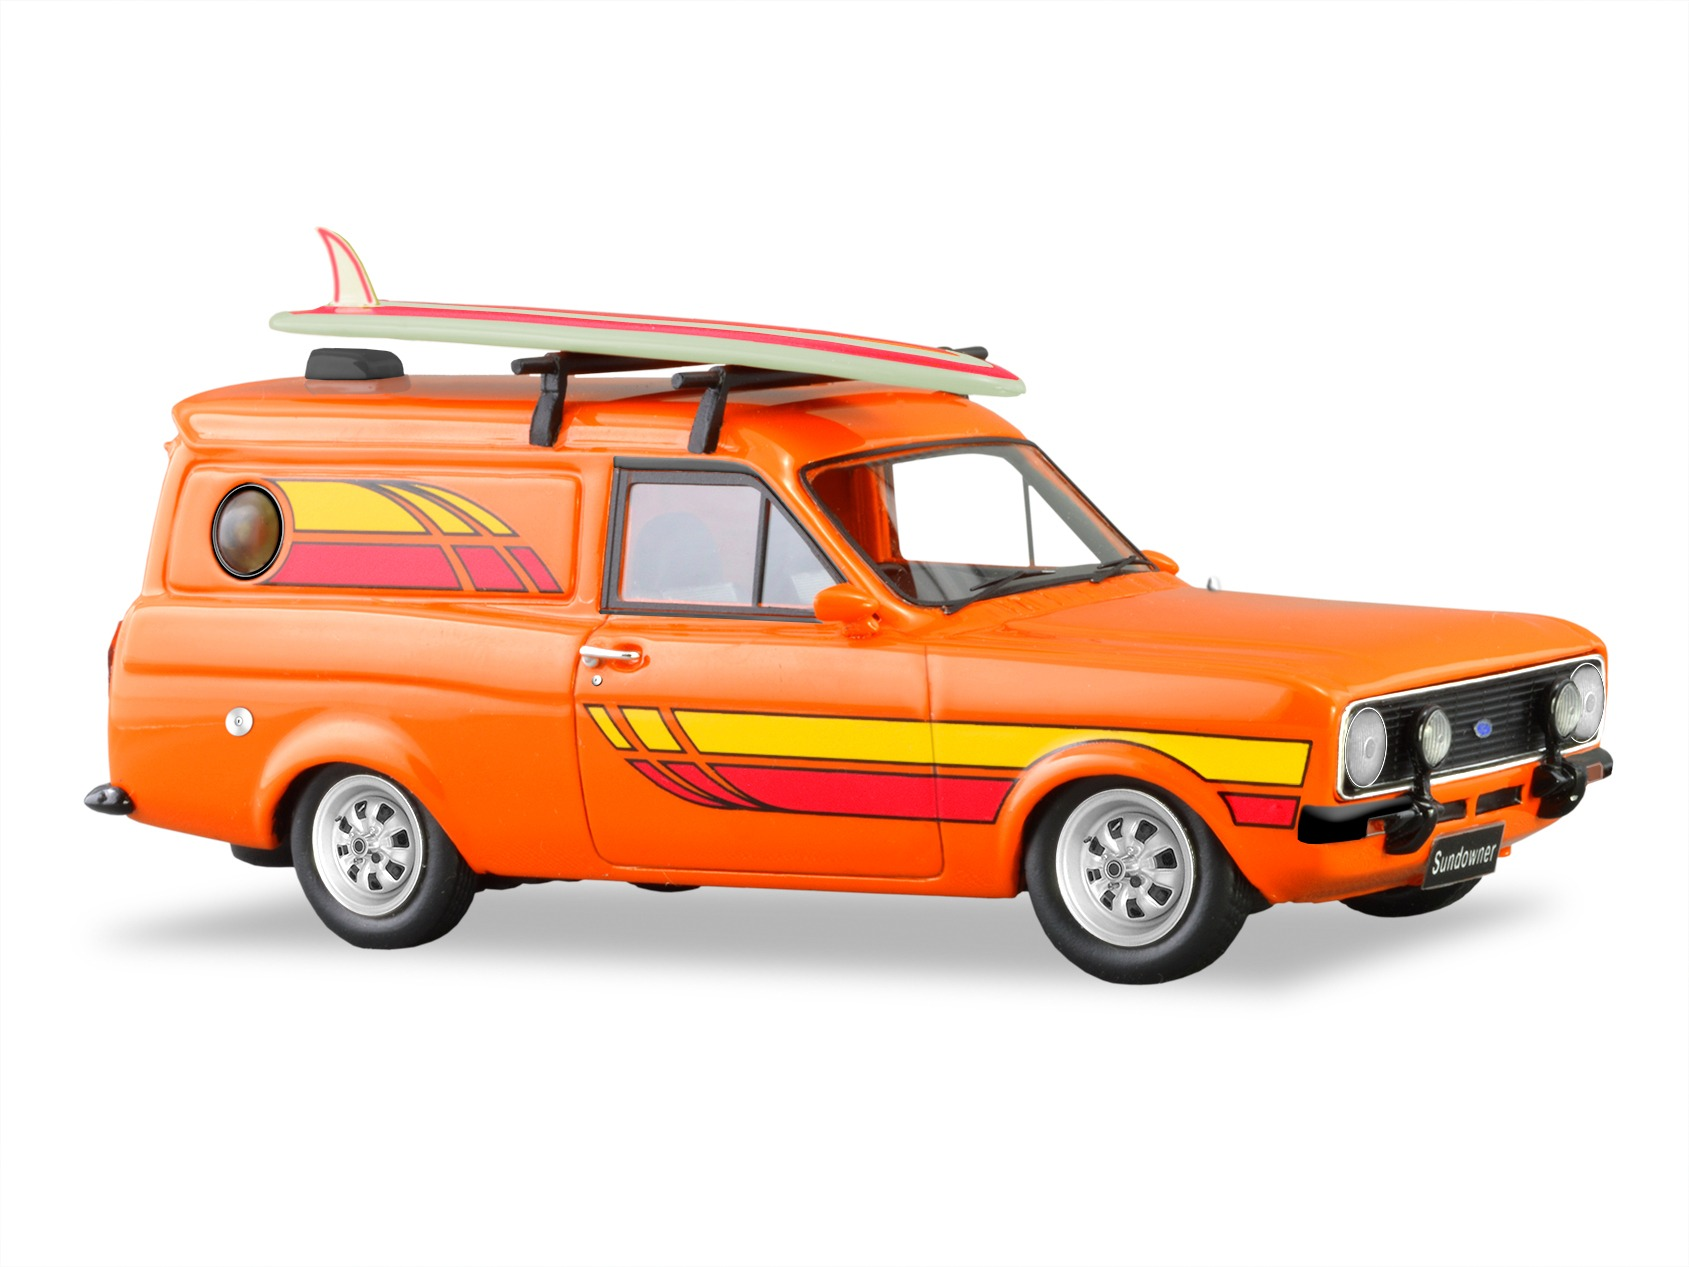 1978 Ford Escort Sundowner Panel Van – Raw Orange With Surfboard